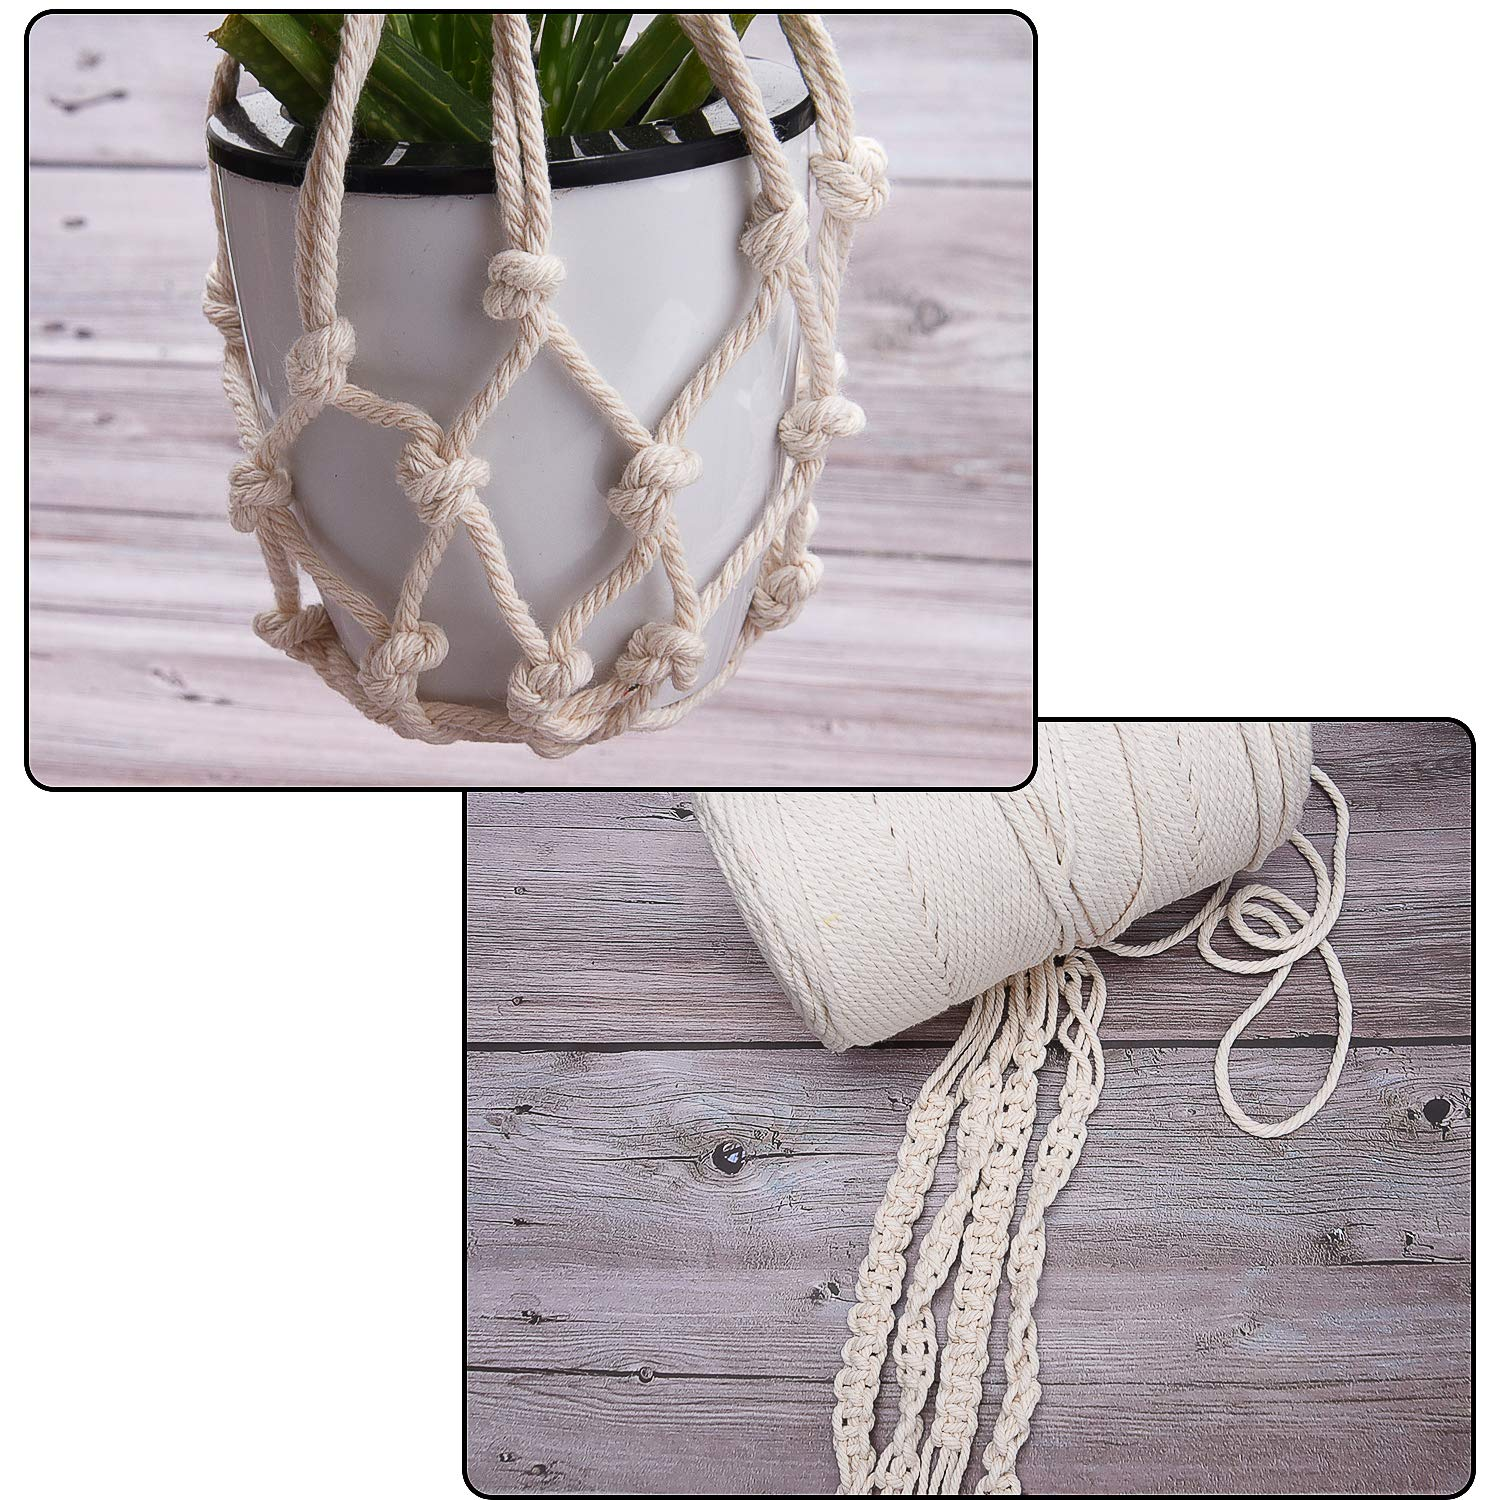 Plant Hangers Livder Macrame Cord 4mm x 240 Yards String Cotton Rope for Wall Hangings Decorative Projects and Knits Crafts